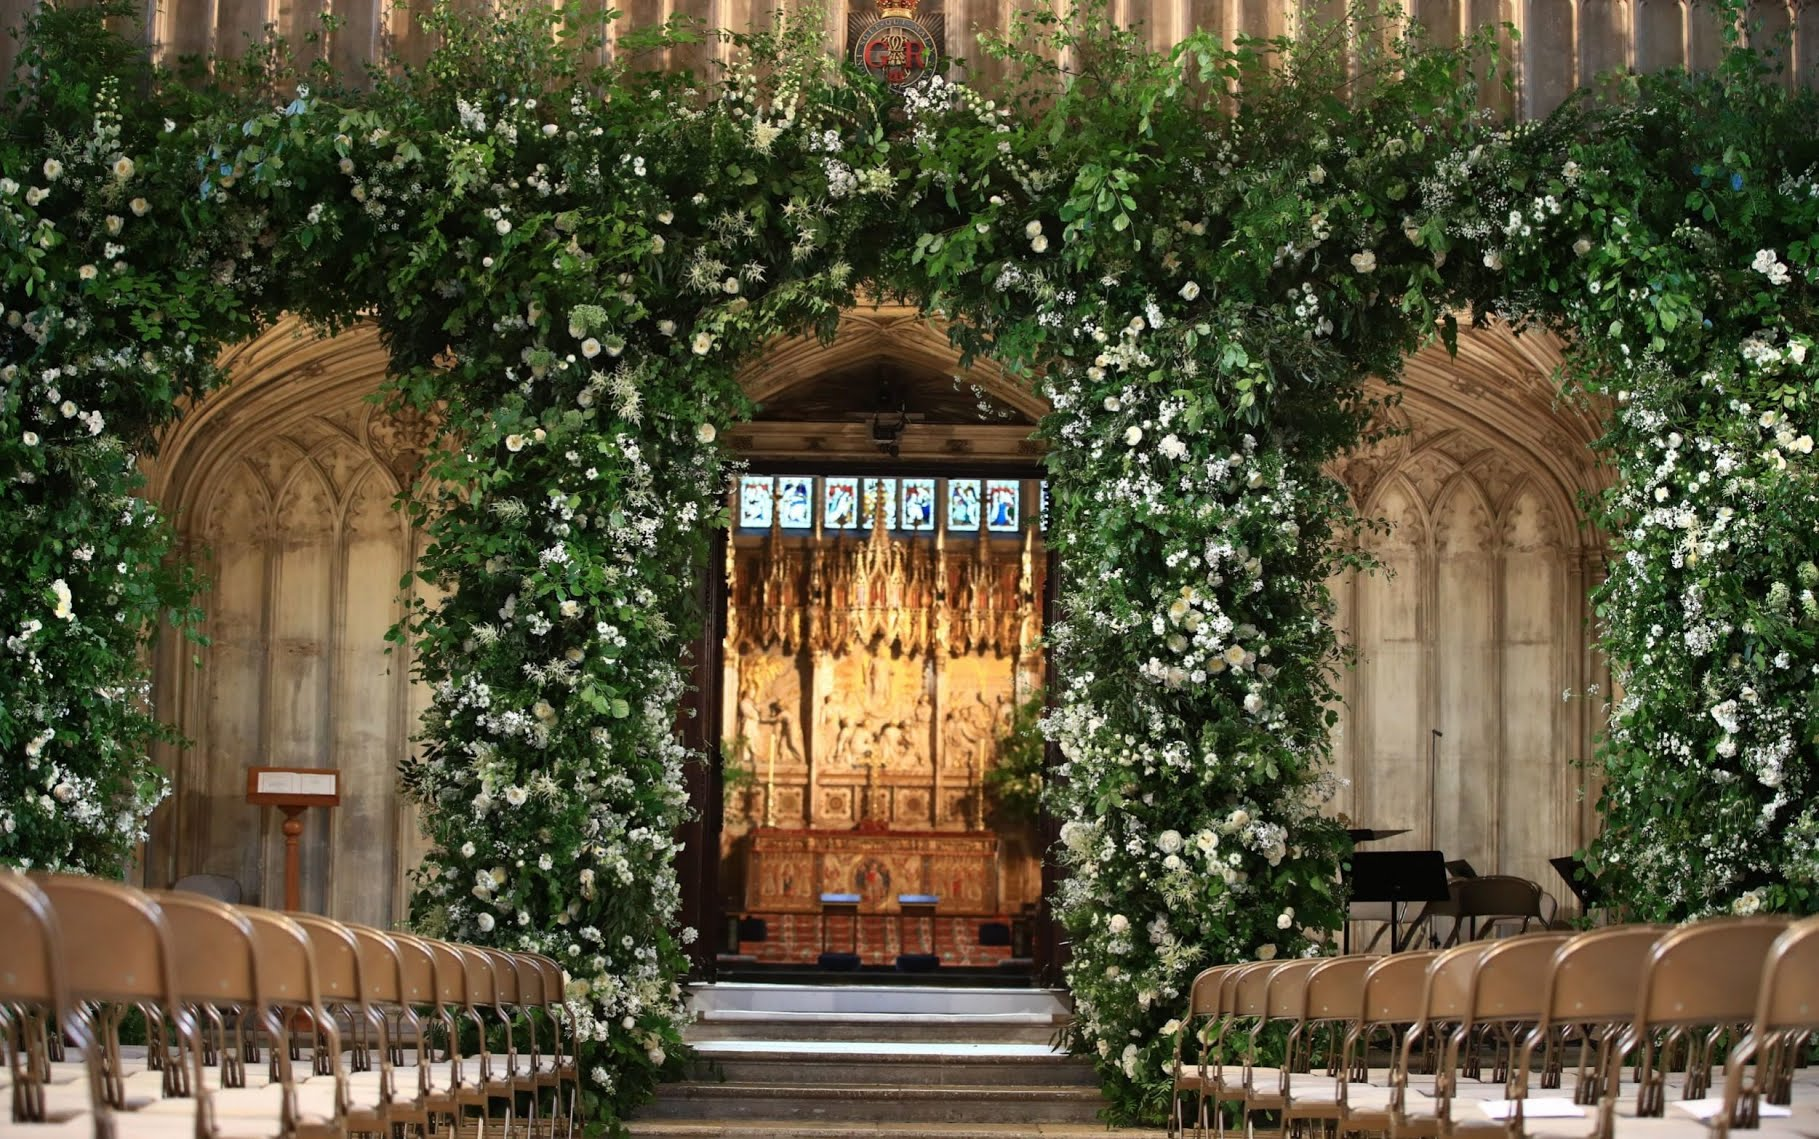 Flowers adorn the front of the organ loft inside St George's Chapel